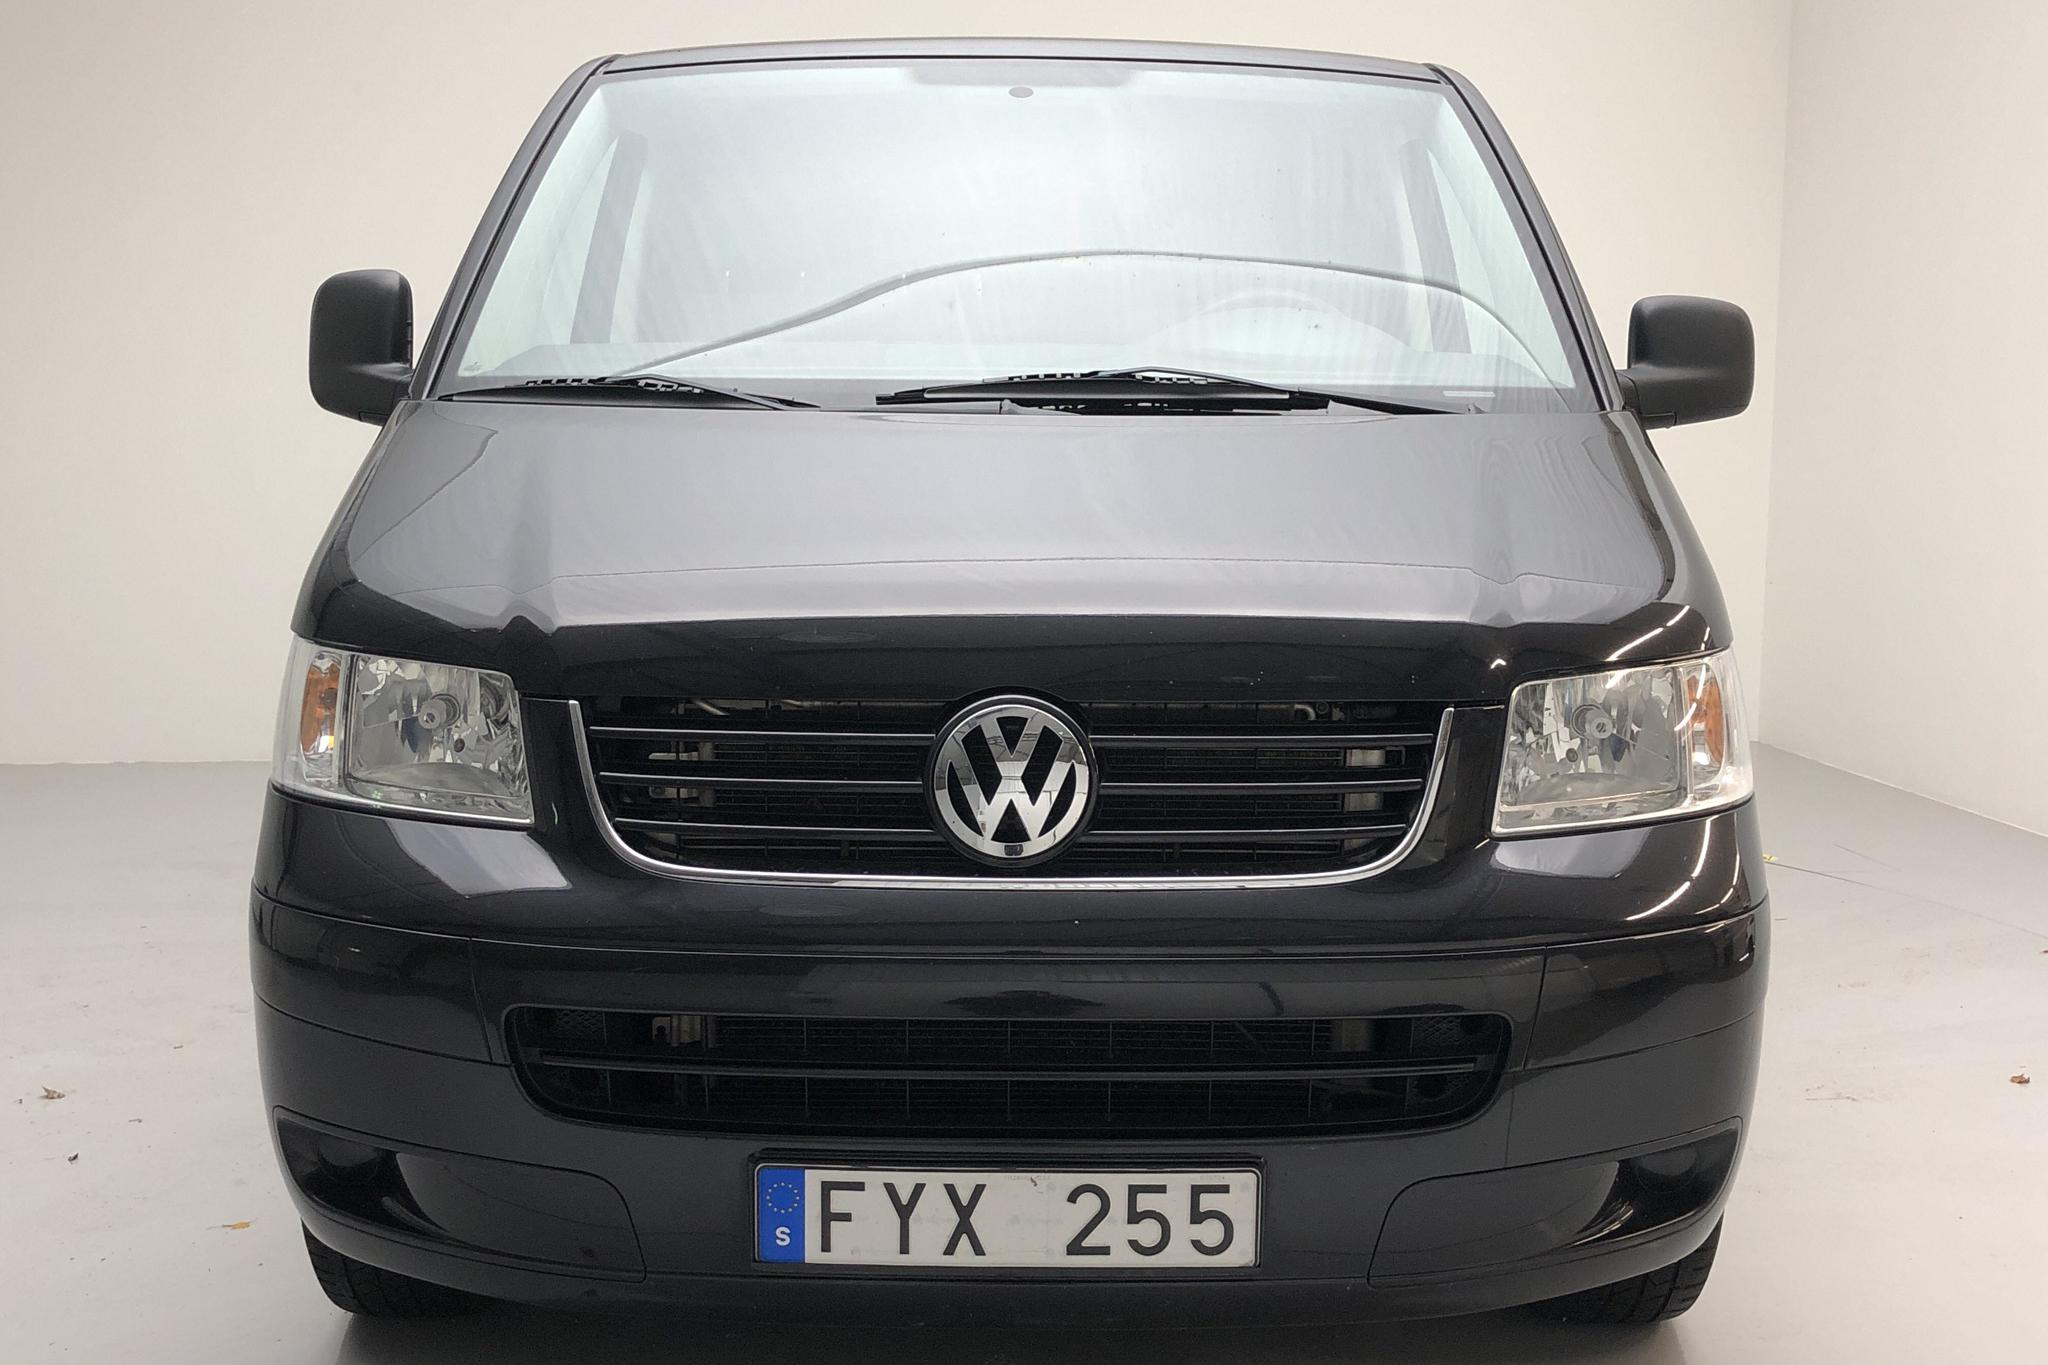 VW Transporter T5 2.5 TDI (130hk) - 129 720 km - Manual - black - 2008